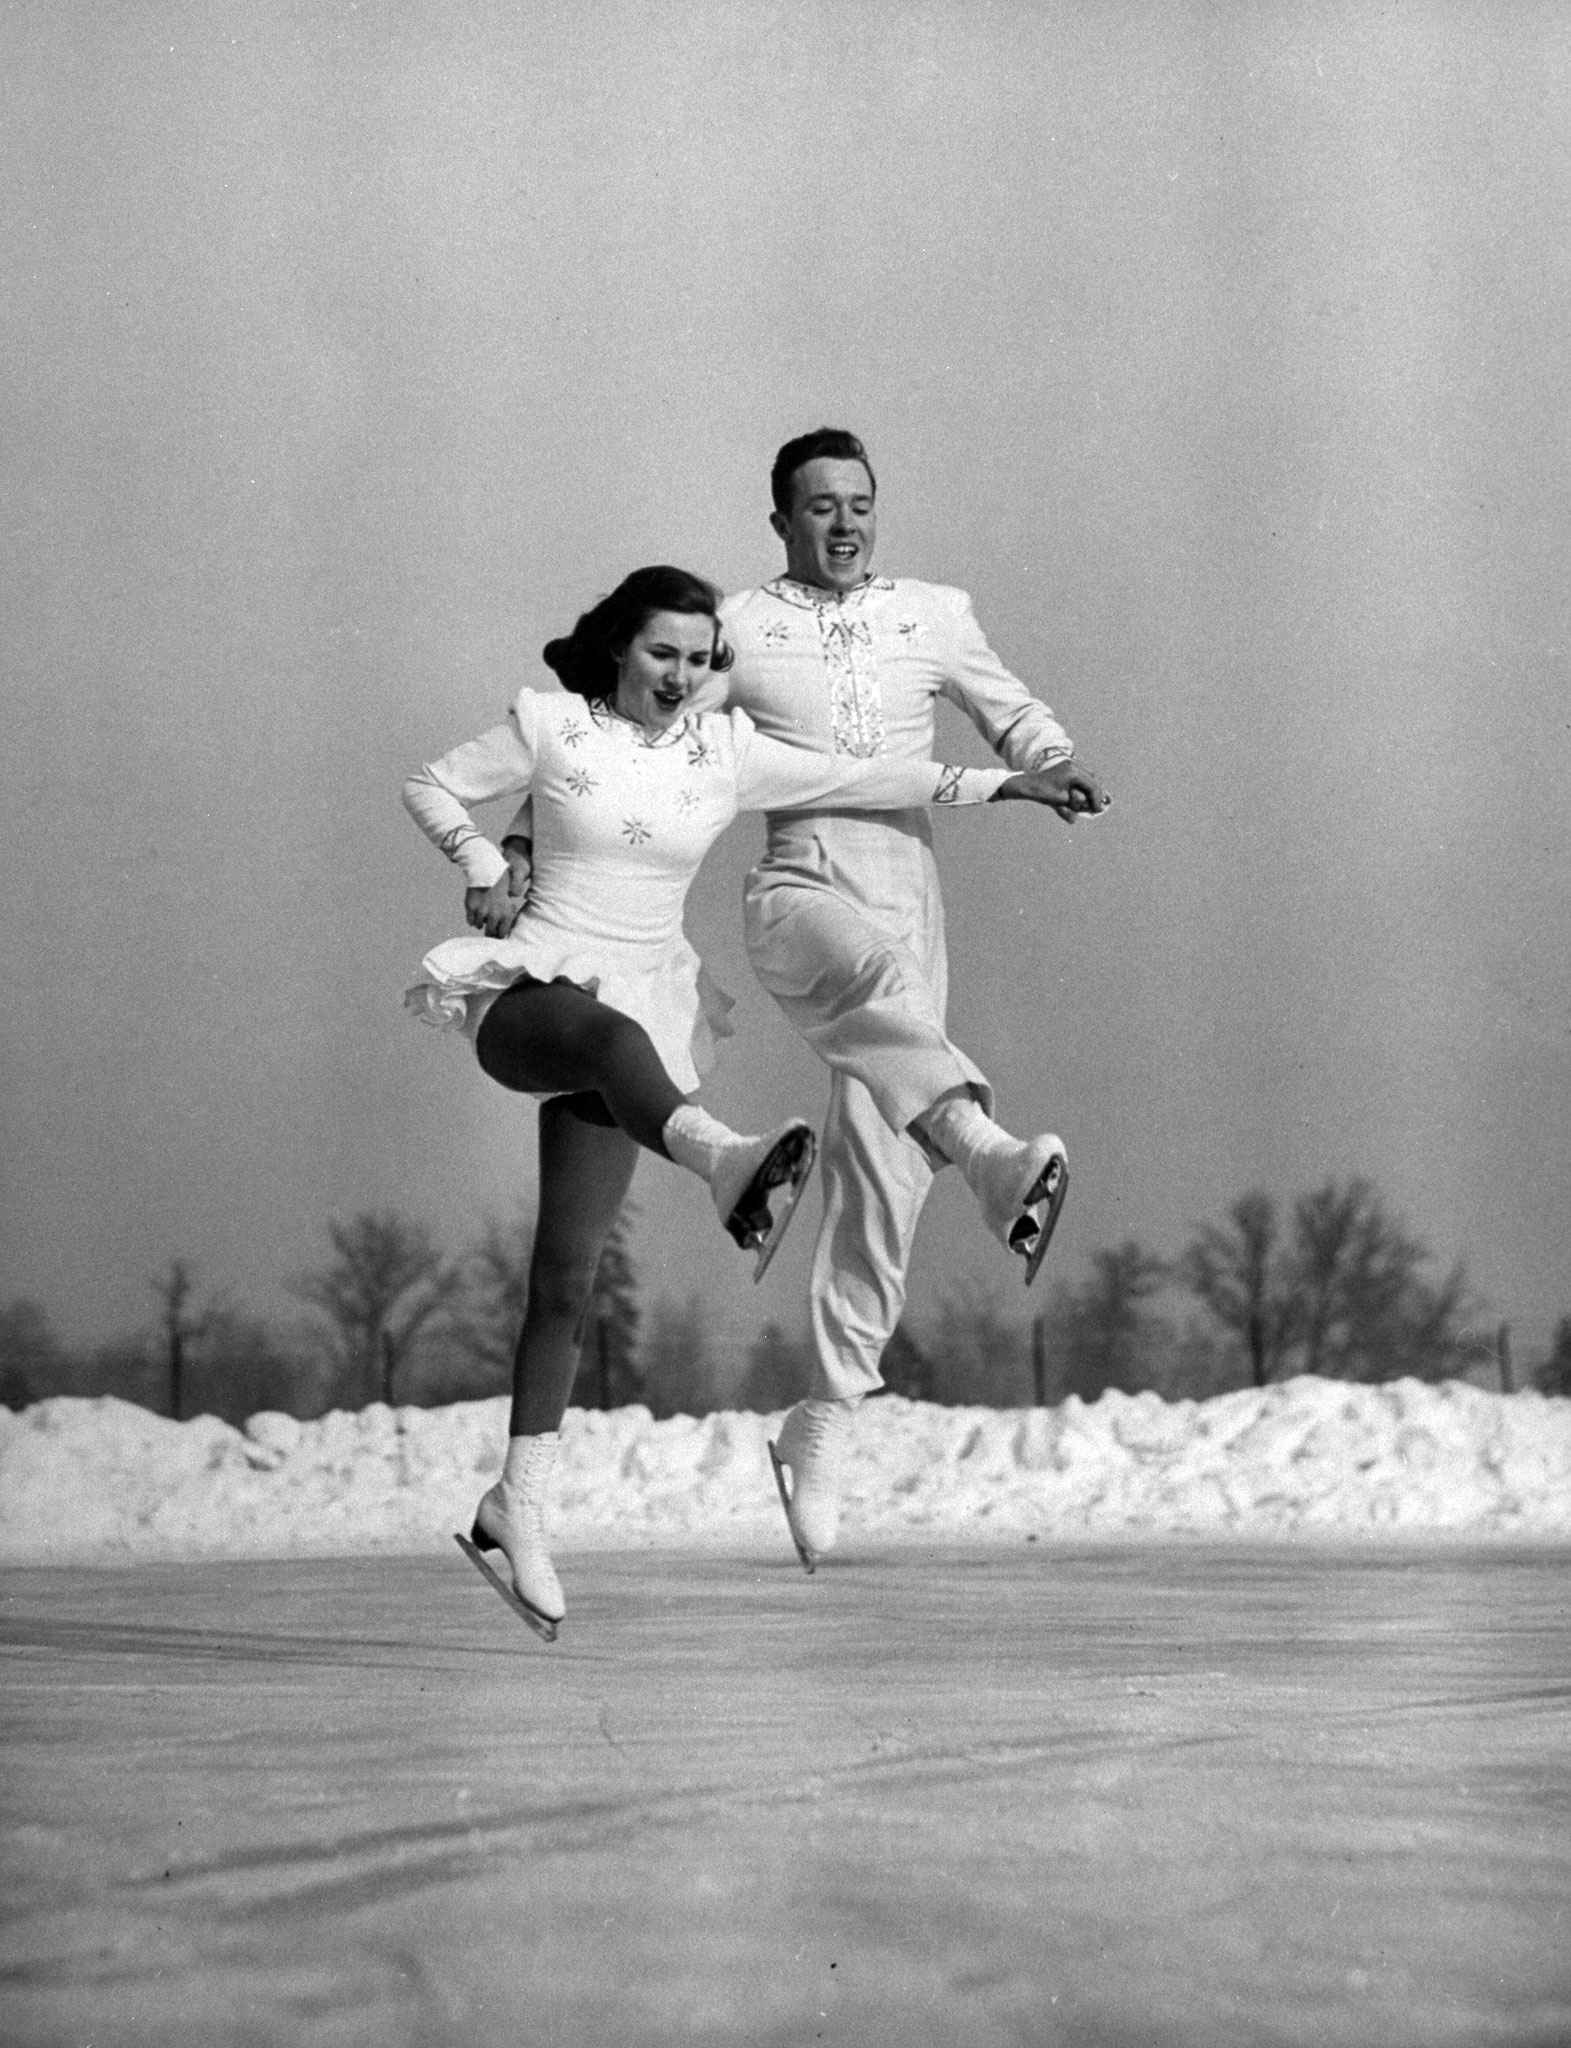 <b>Caption from LIFE.</b> New pair skaters at contest were Kennedy kids, Michael, 19 and Karol, 14, who came from Seattle, Wash. Despite their youth they won second place.